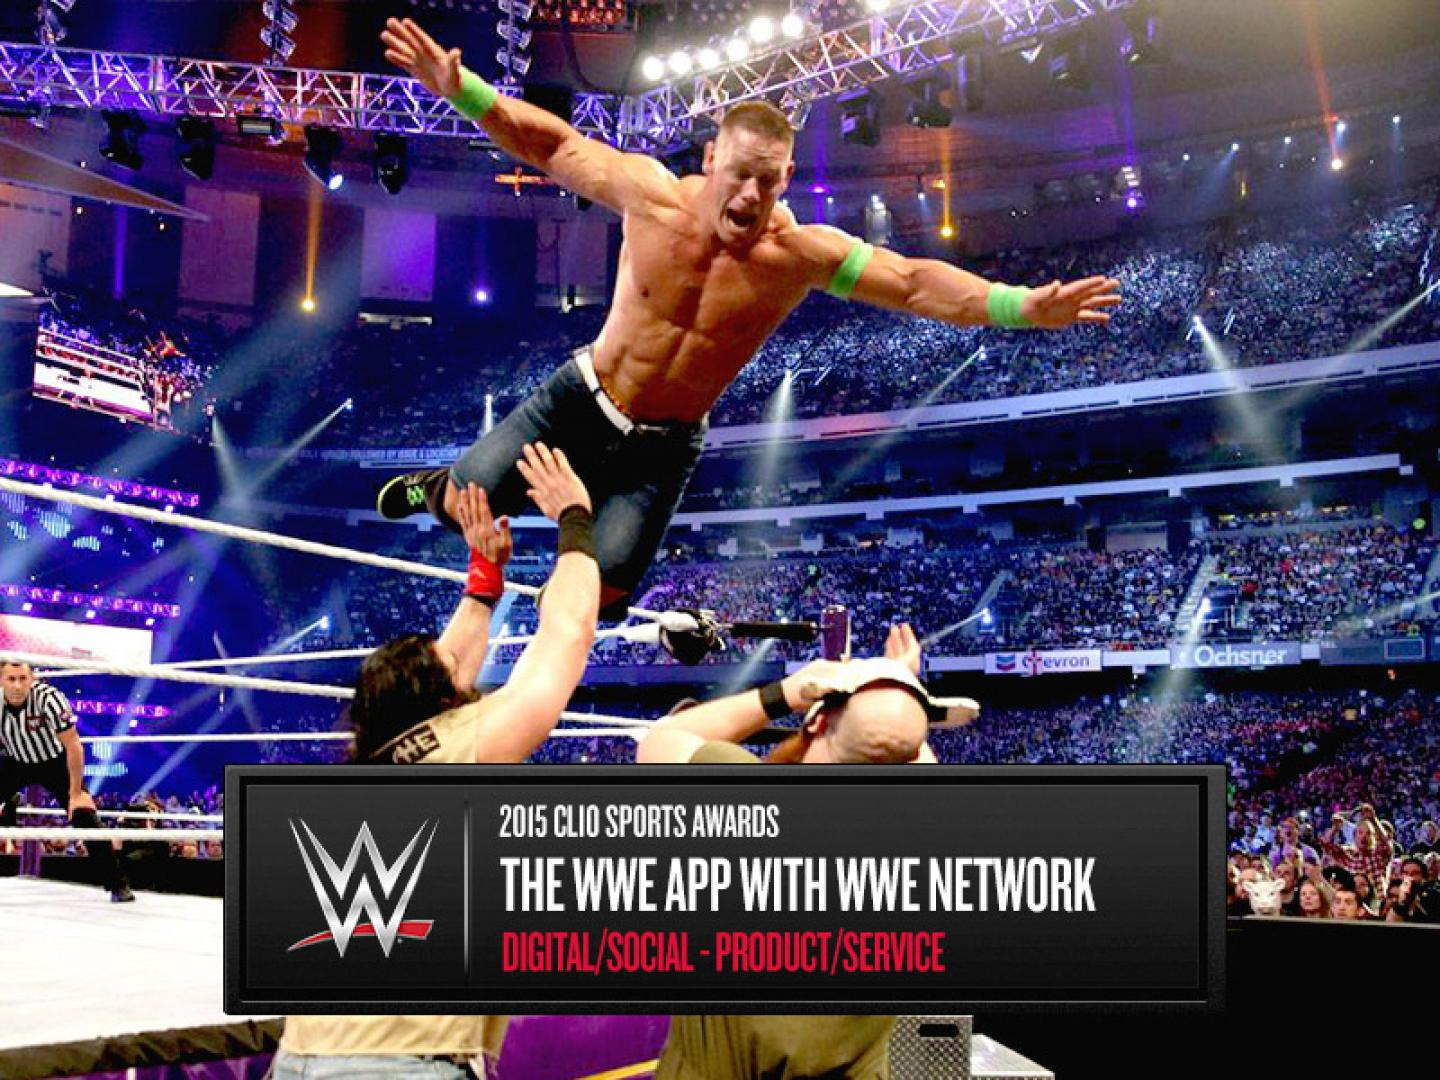 WWE App with WWE Network Thumbnail